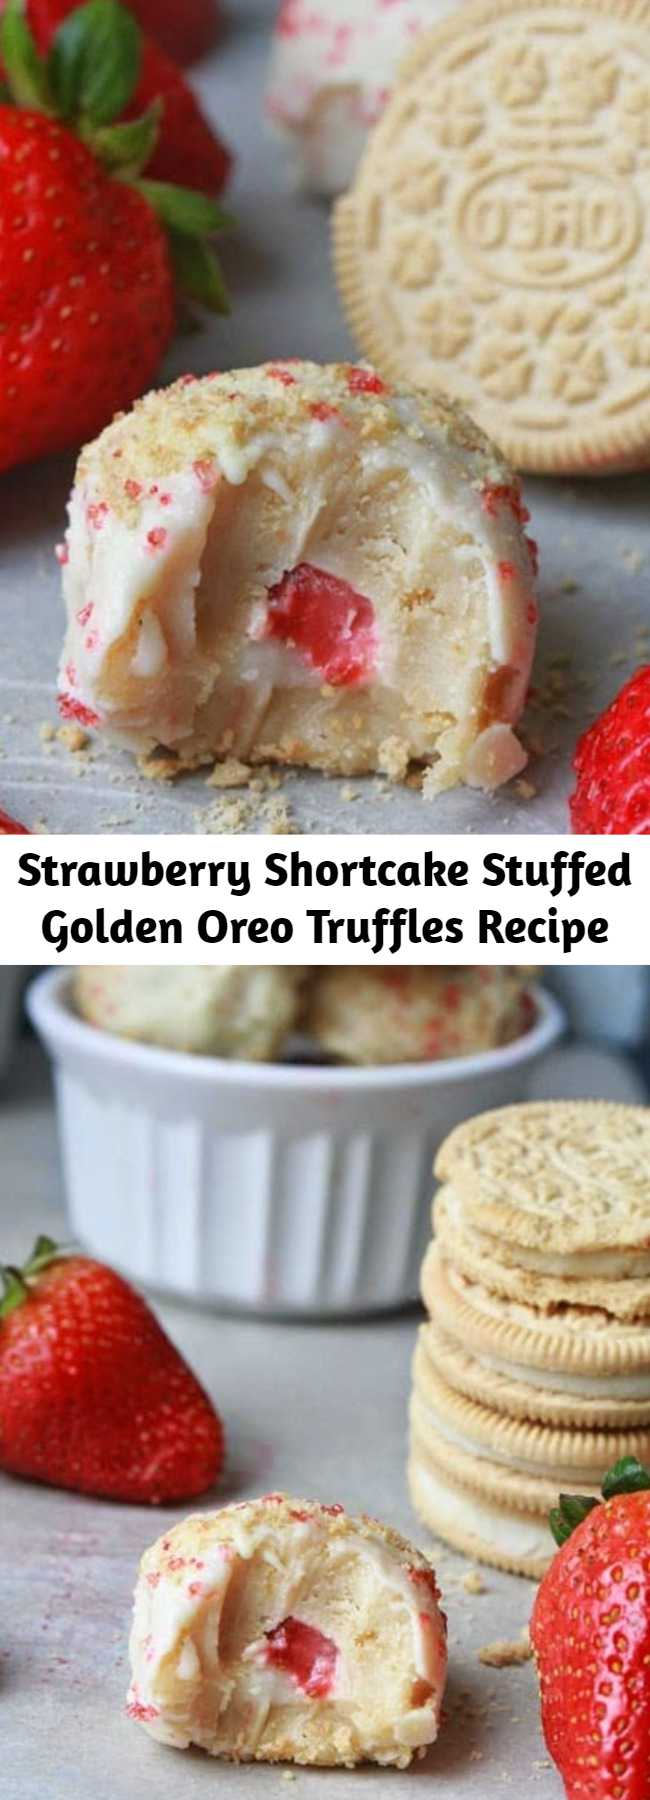 Strawberry Shortcake Stuffed Golden Oreo Truffles Recipe - Strawberry shortcake truffles made with Golden Oreo cookies and cream cheese. The dough balls are stuffed with fresh strawberries and whipped cream then dipped into melted white chocolate. A simple and fun way to enjoy the classic strawberry shortcake.